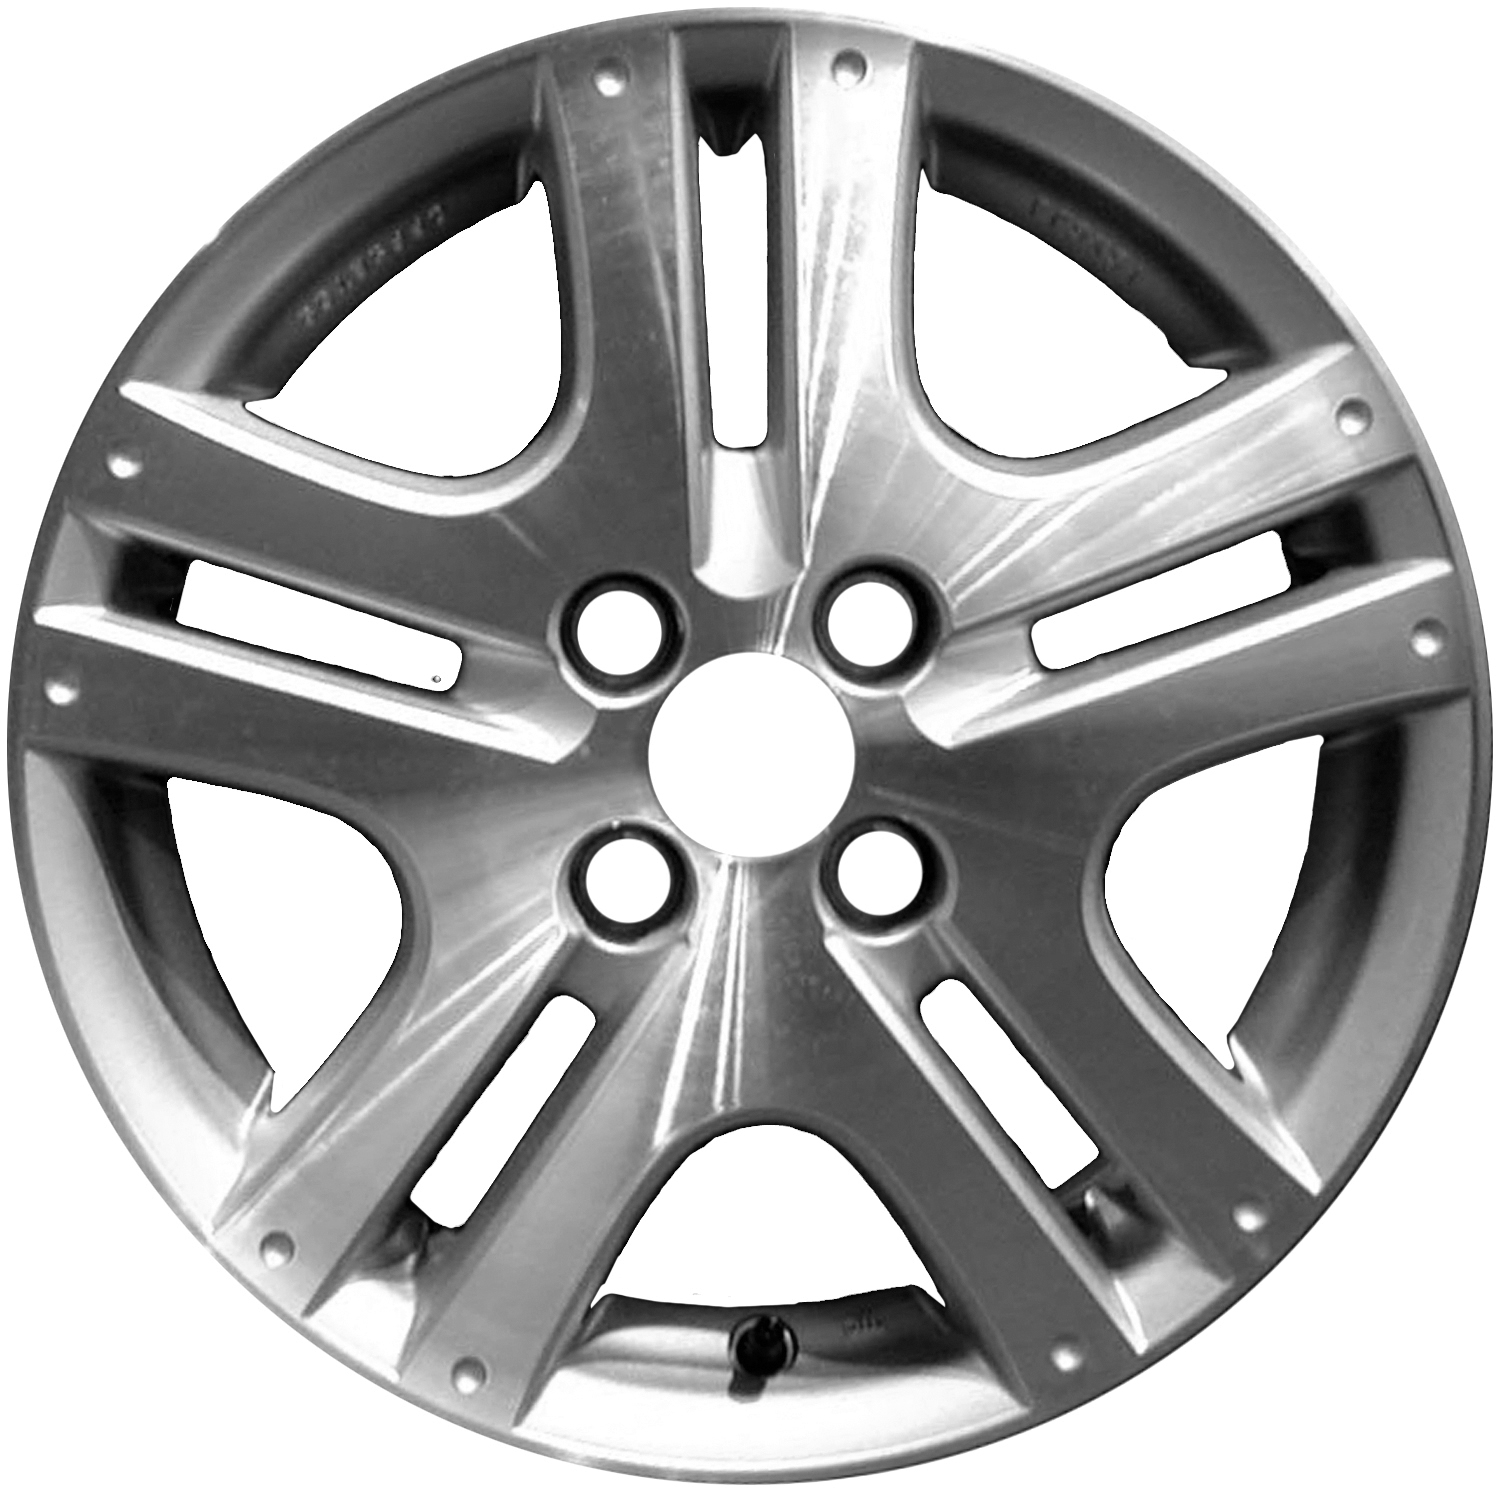 2007-2008 Honda Fit  15x6 Alloy Wheel, Rim Bright Sparkle Silver Painted with Machined Face-63917